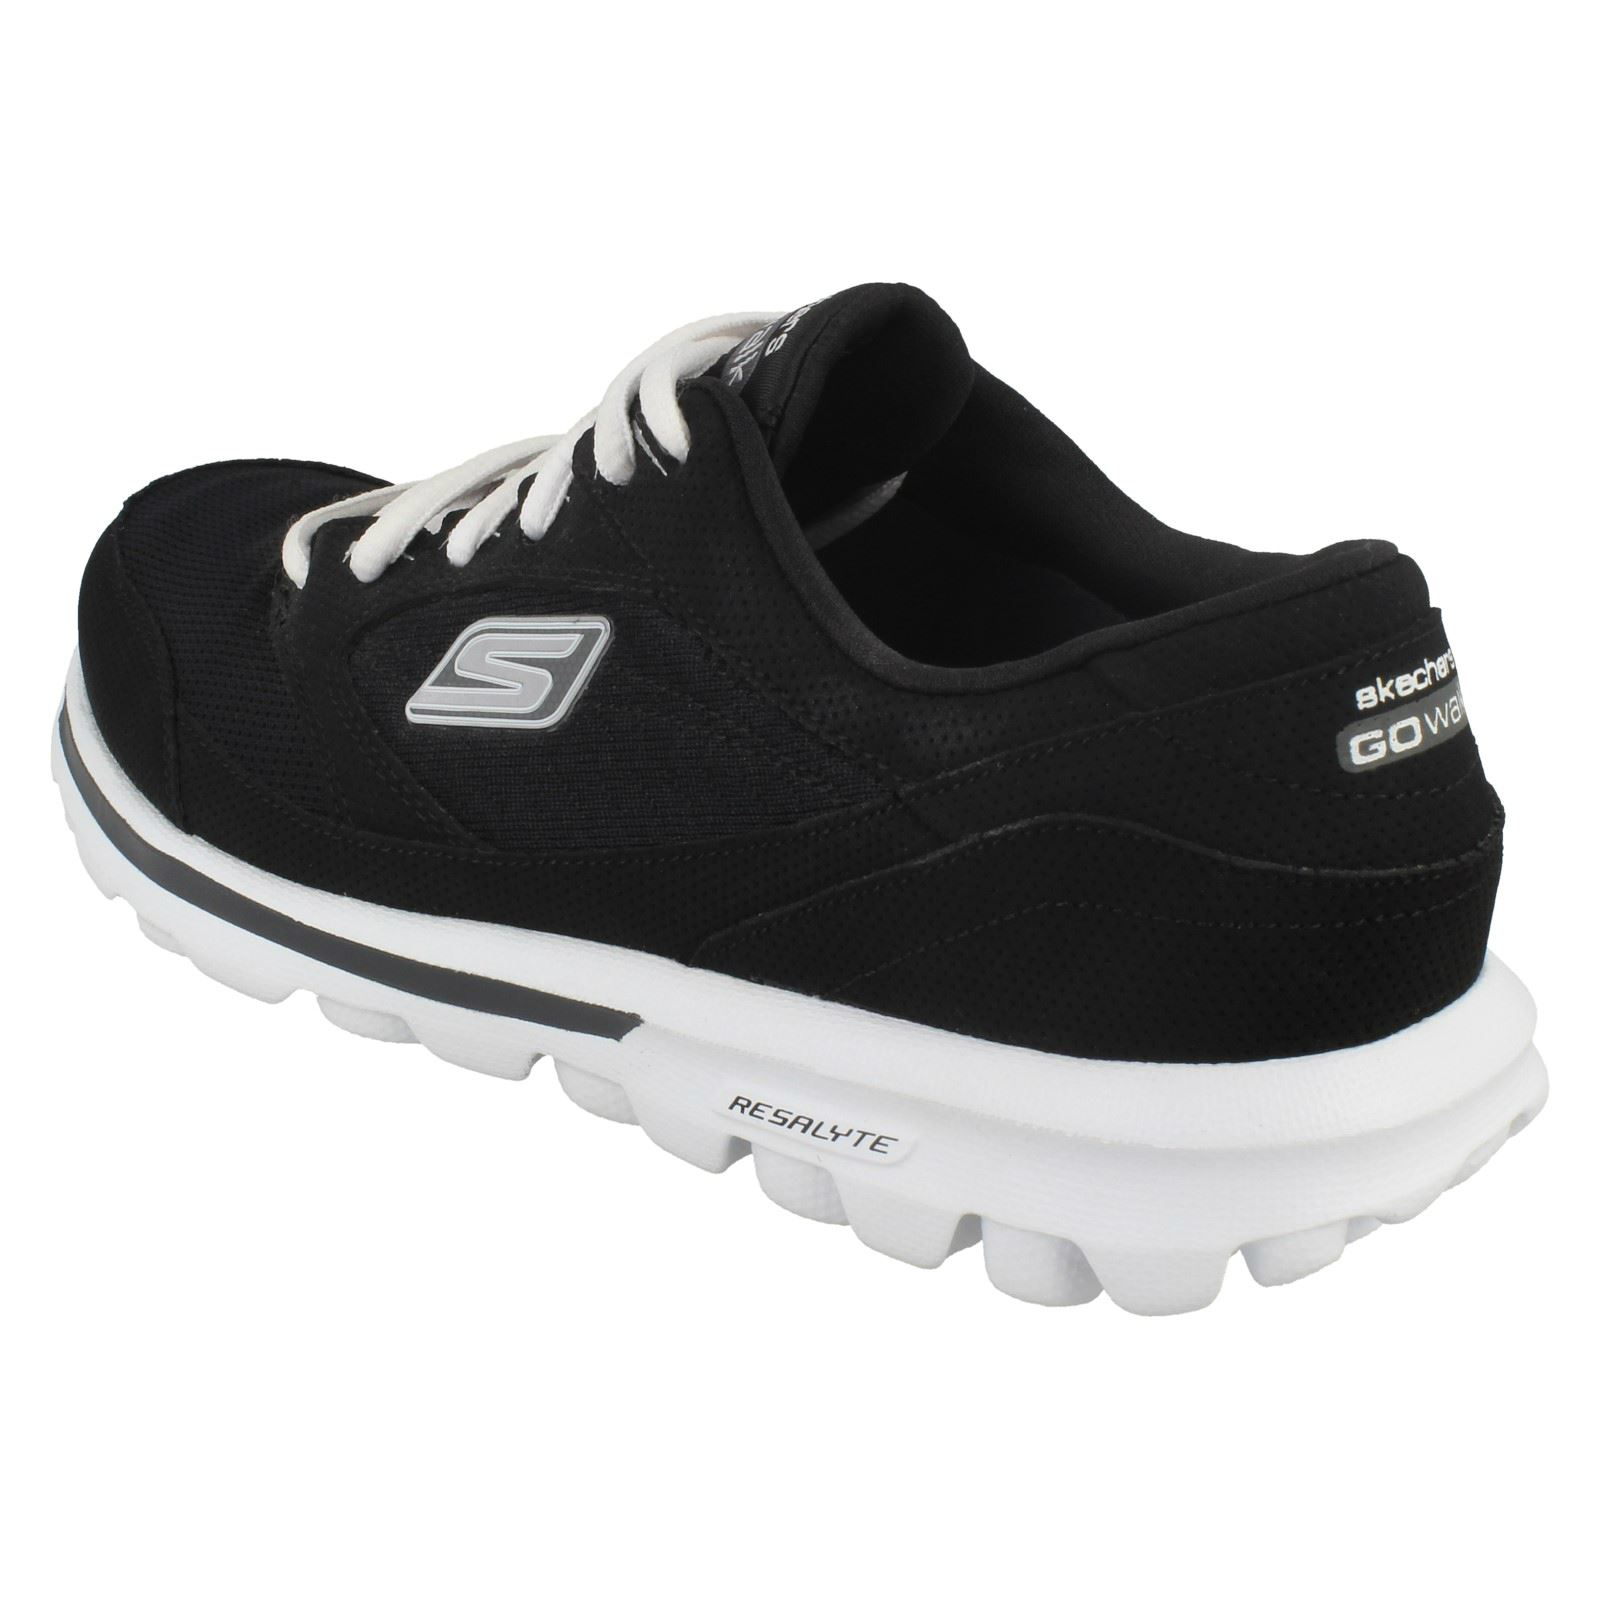 Trainer Baby Active Go Ladies 13569 Walk Nero Skechers nExPW